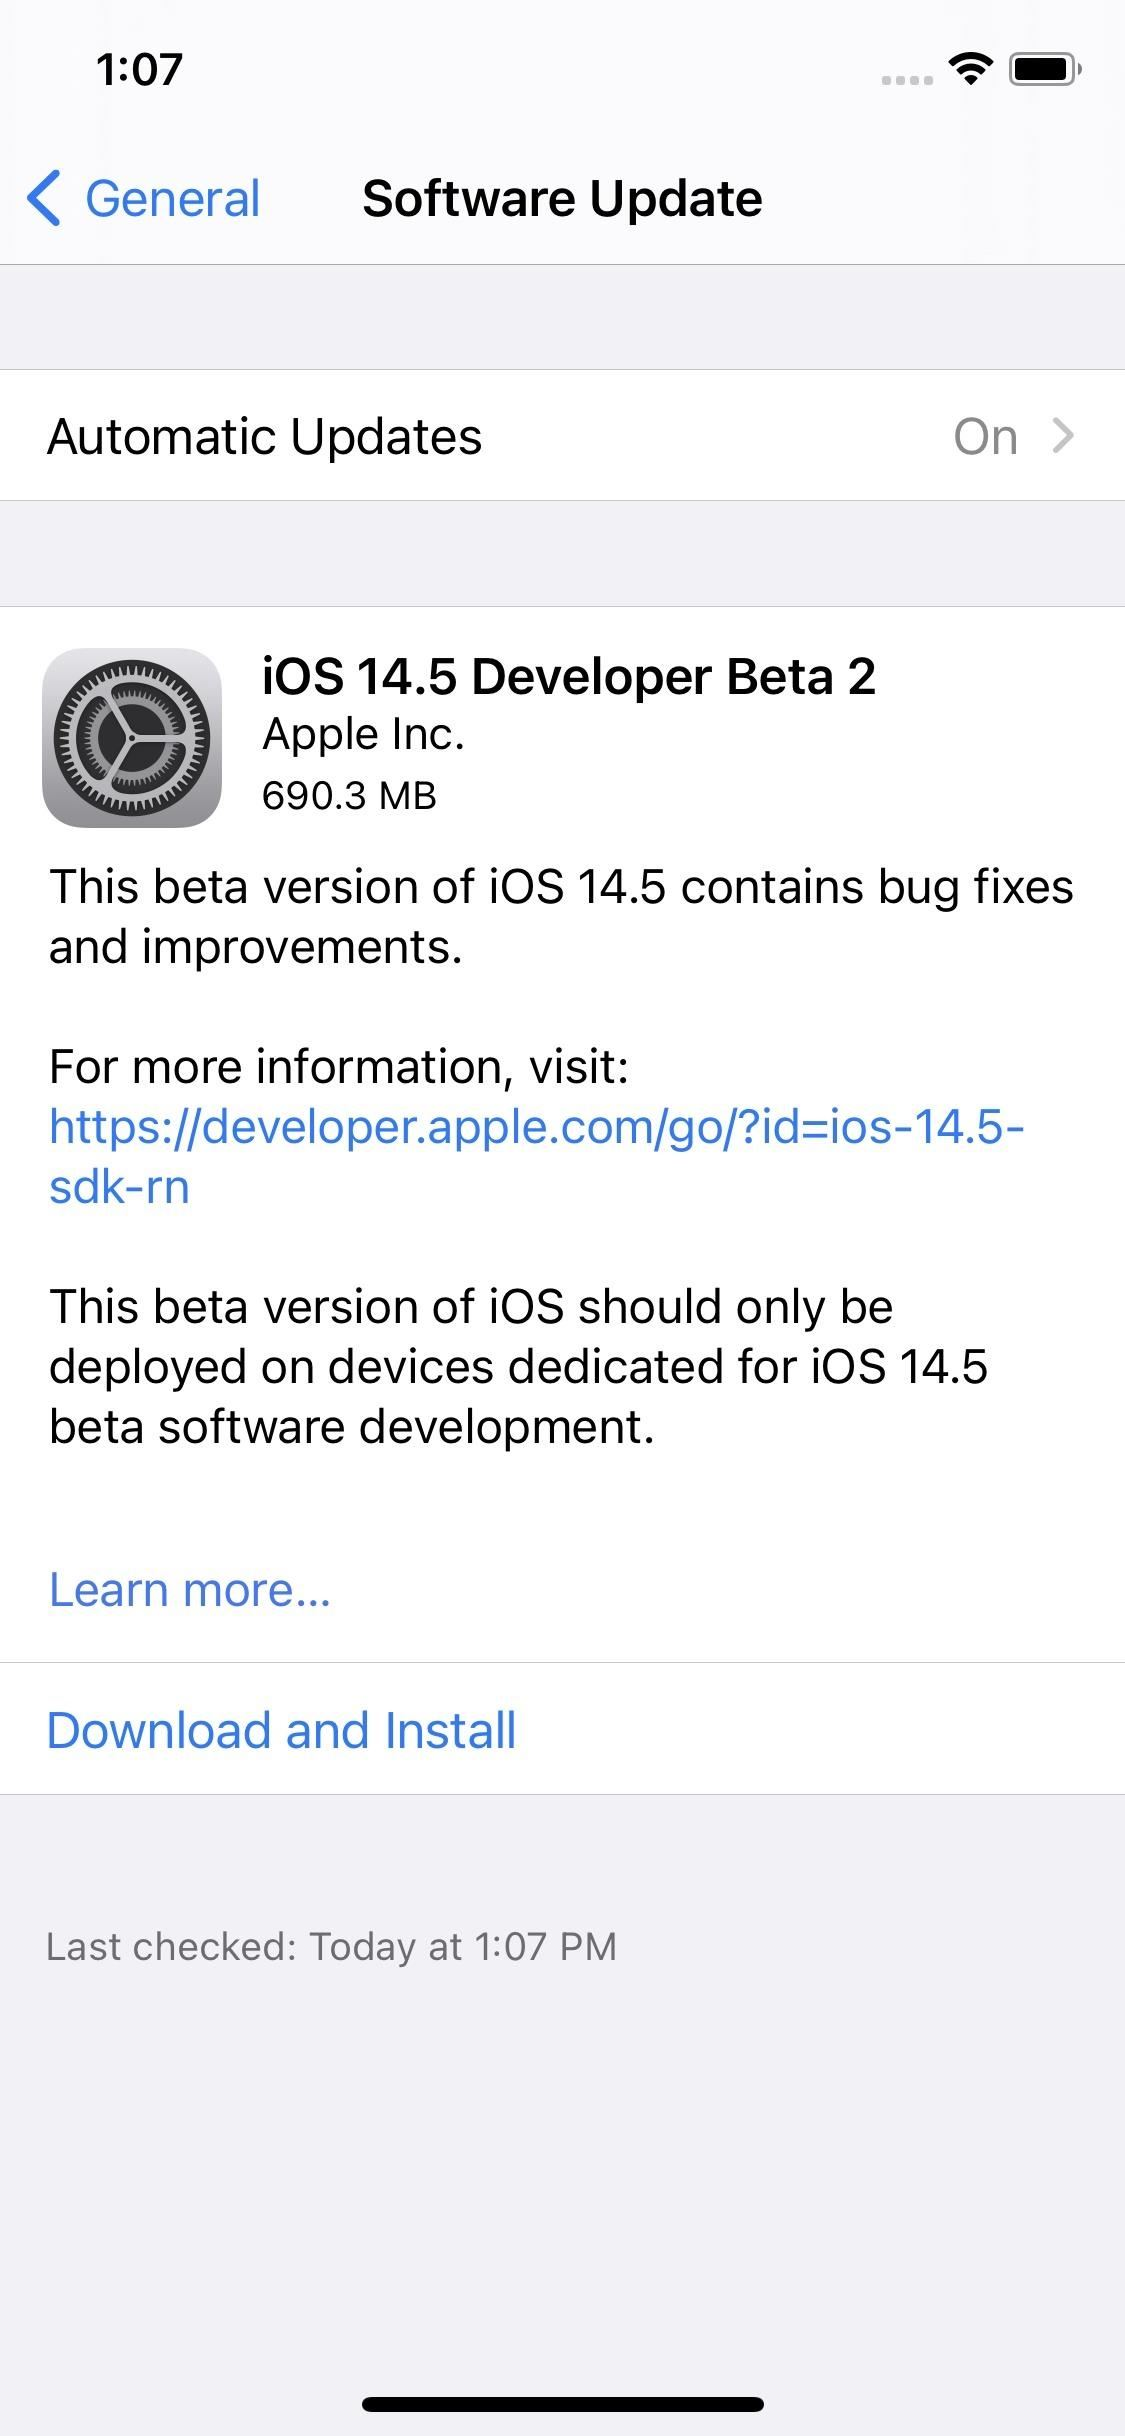 Apple Releases iOS 14.5 Developer Beta 2 for iPhone, Adds Over 200 New Emoji & iPad Microphone Privacy Feature